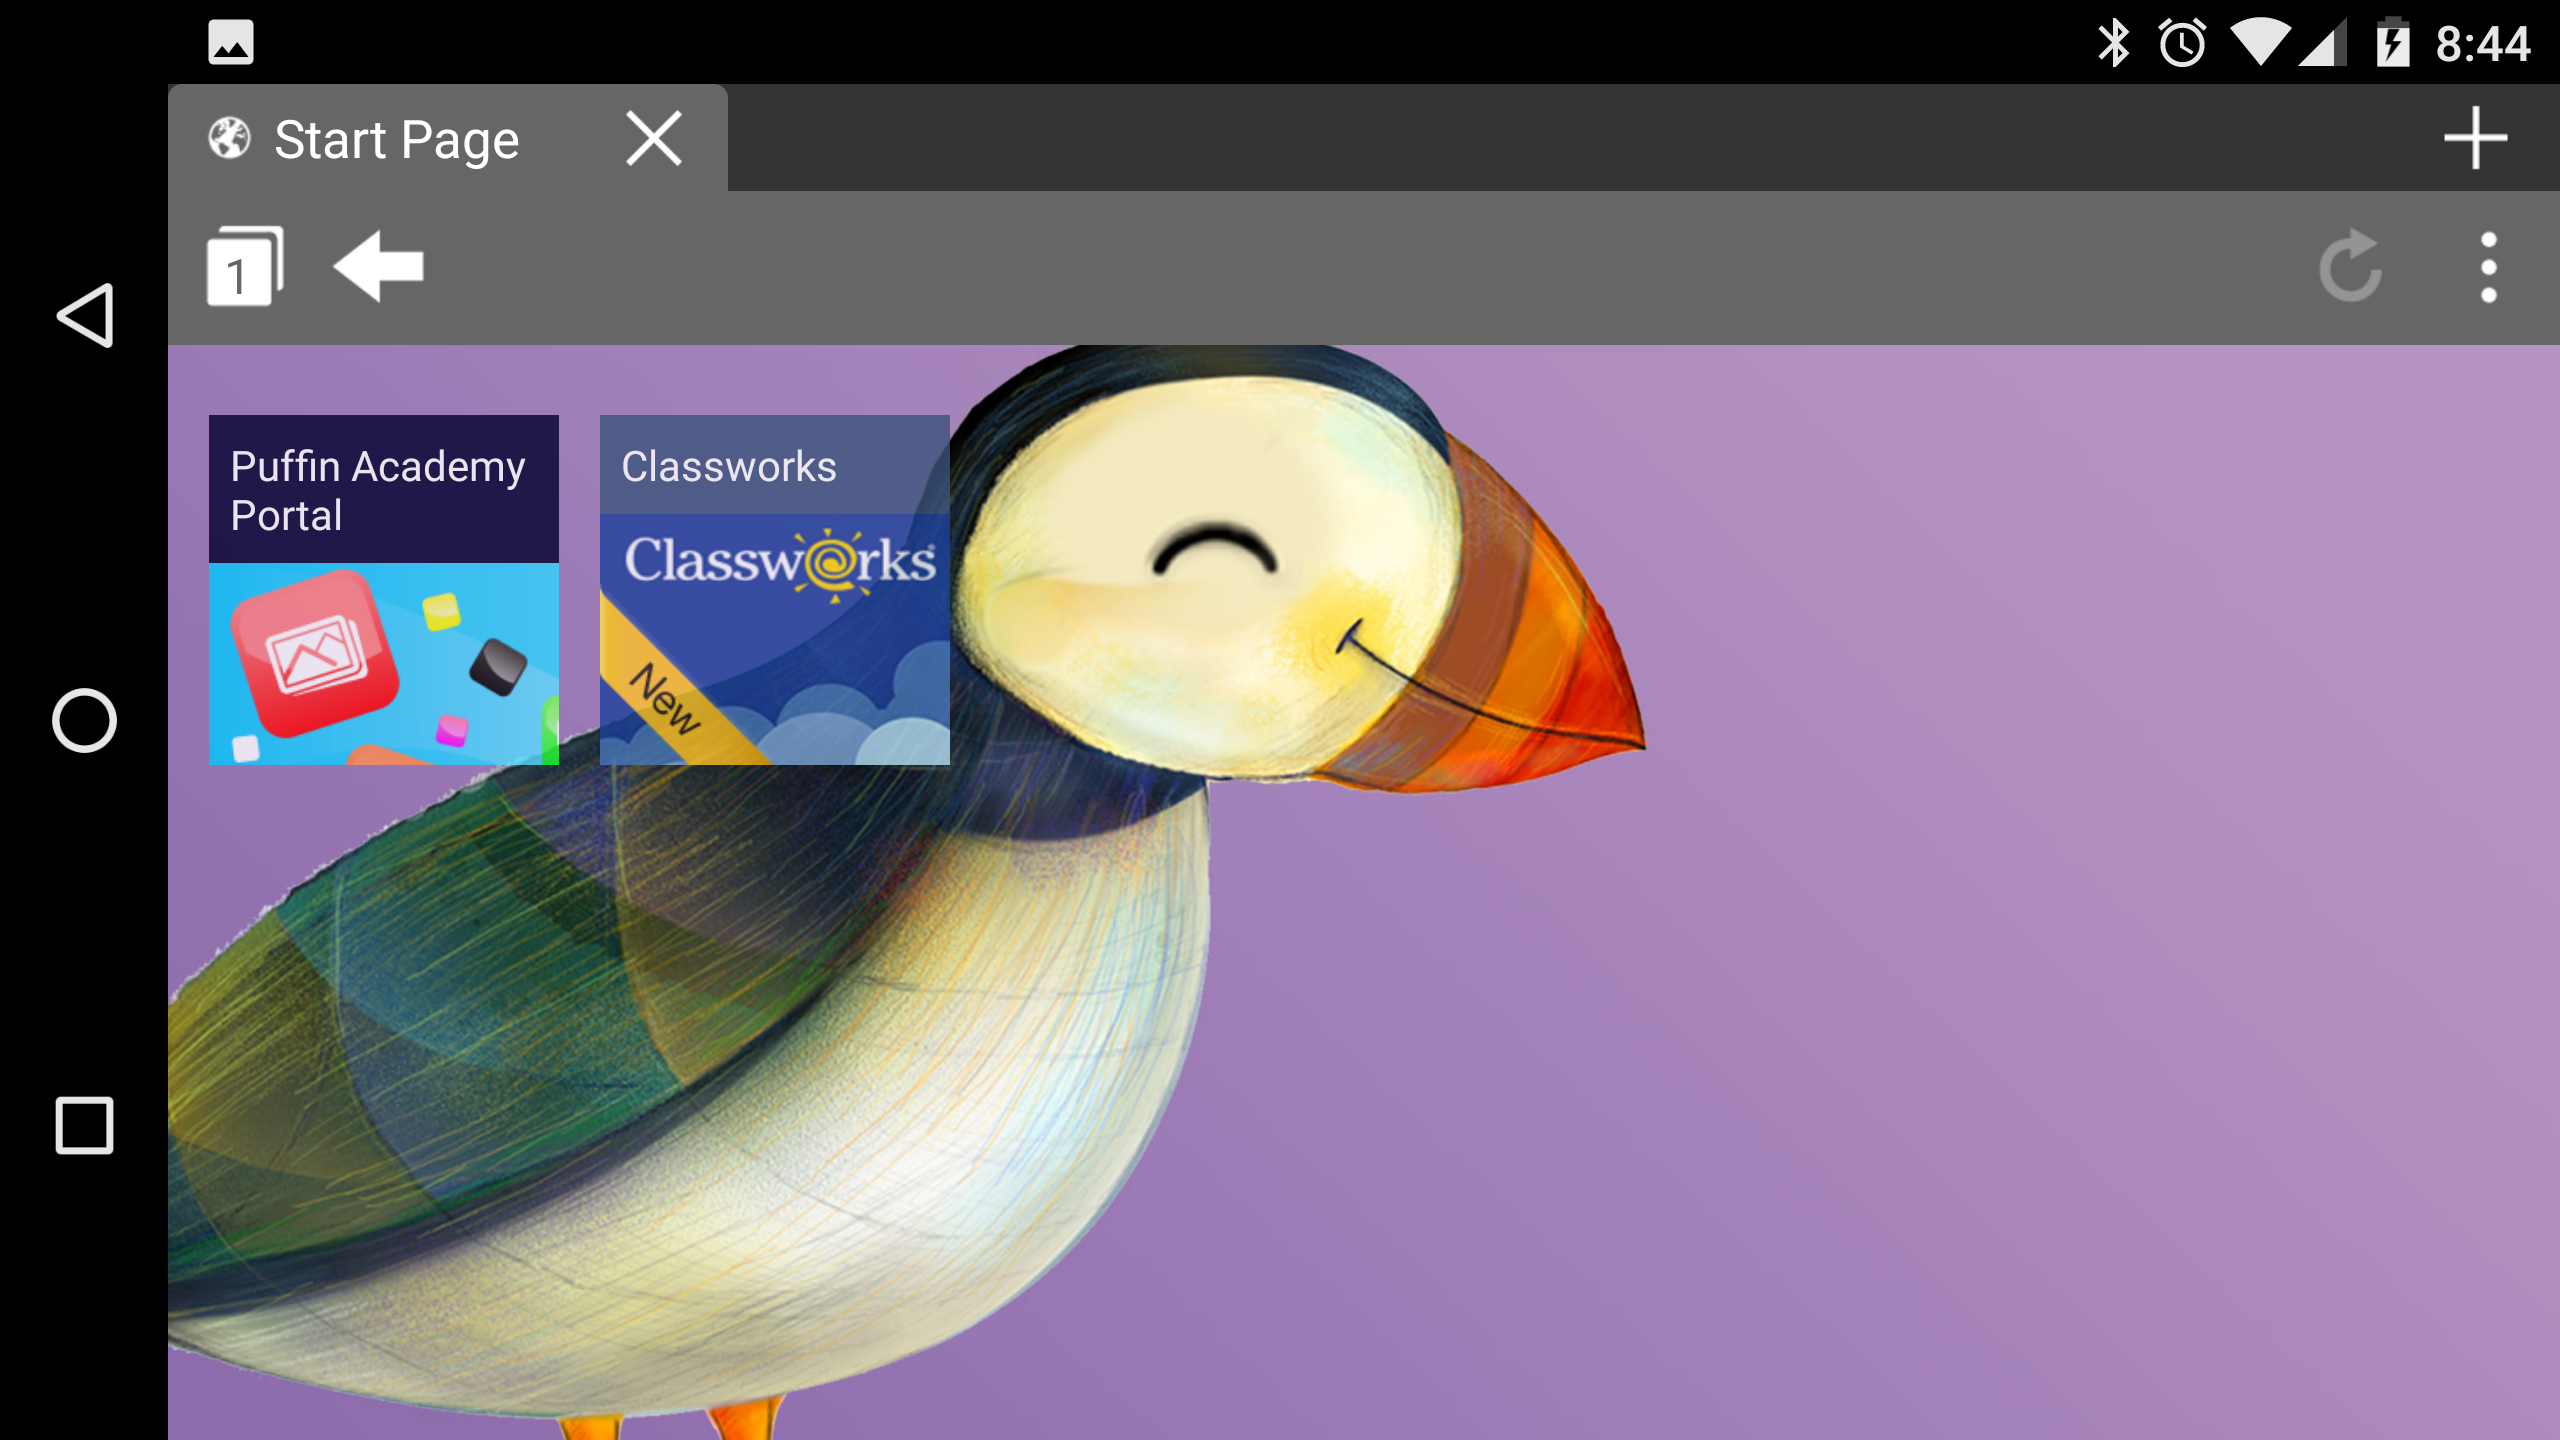 How Can I Add Classworks As An App Shortcut On The Puffin